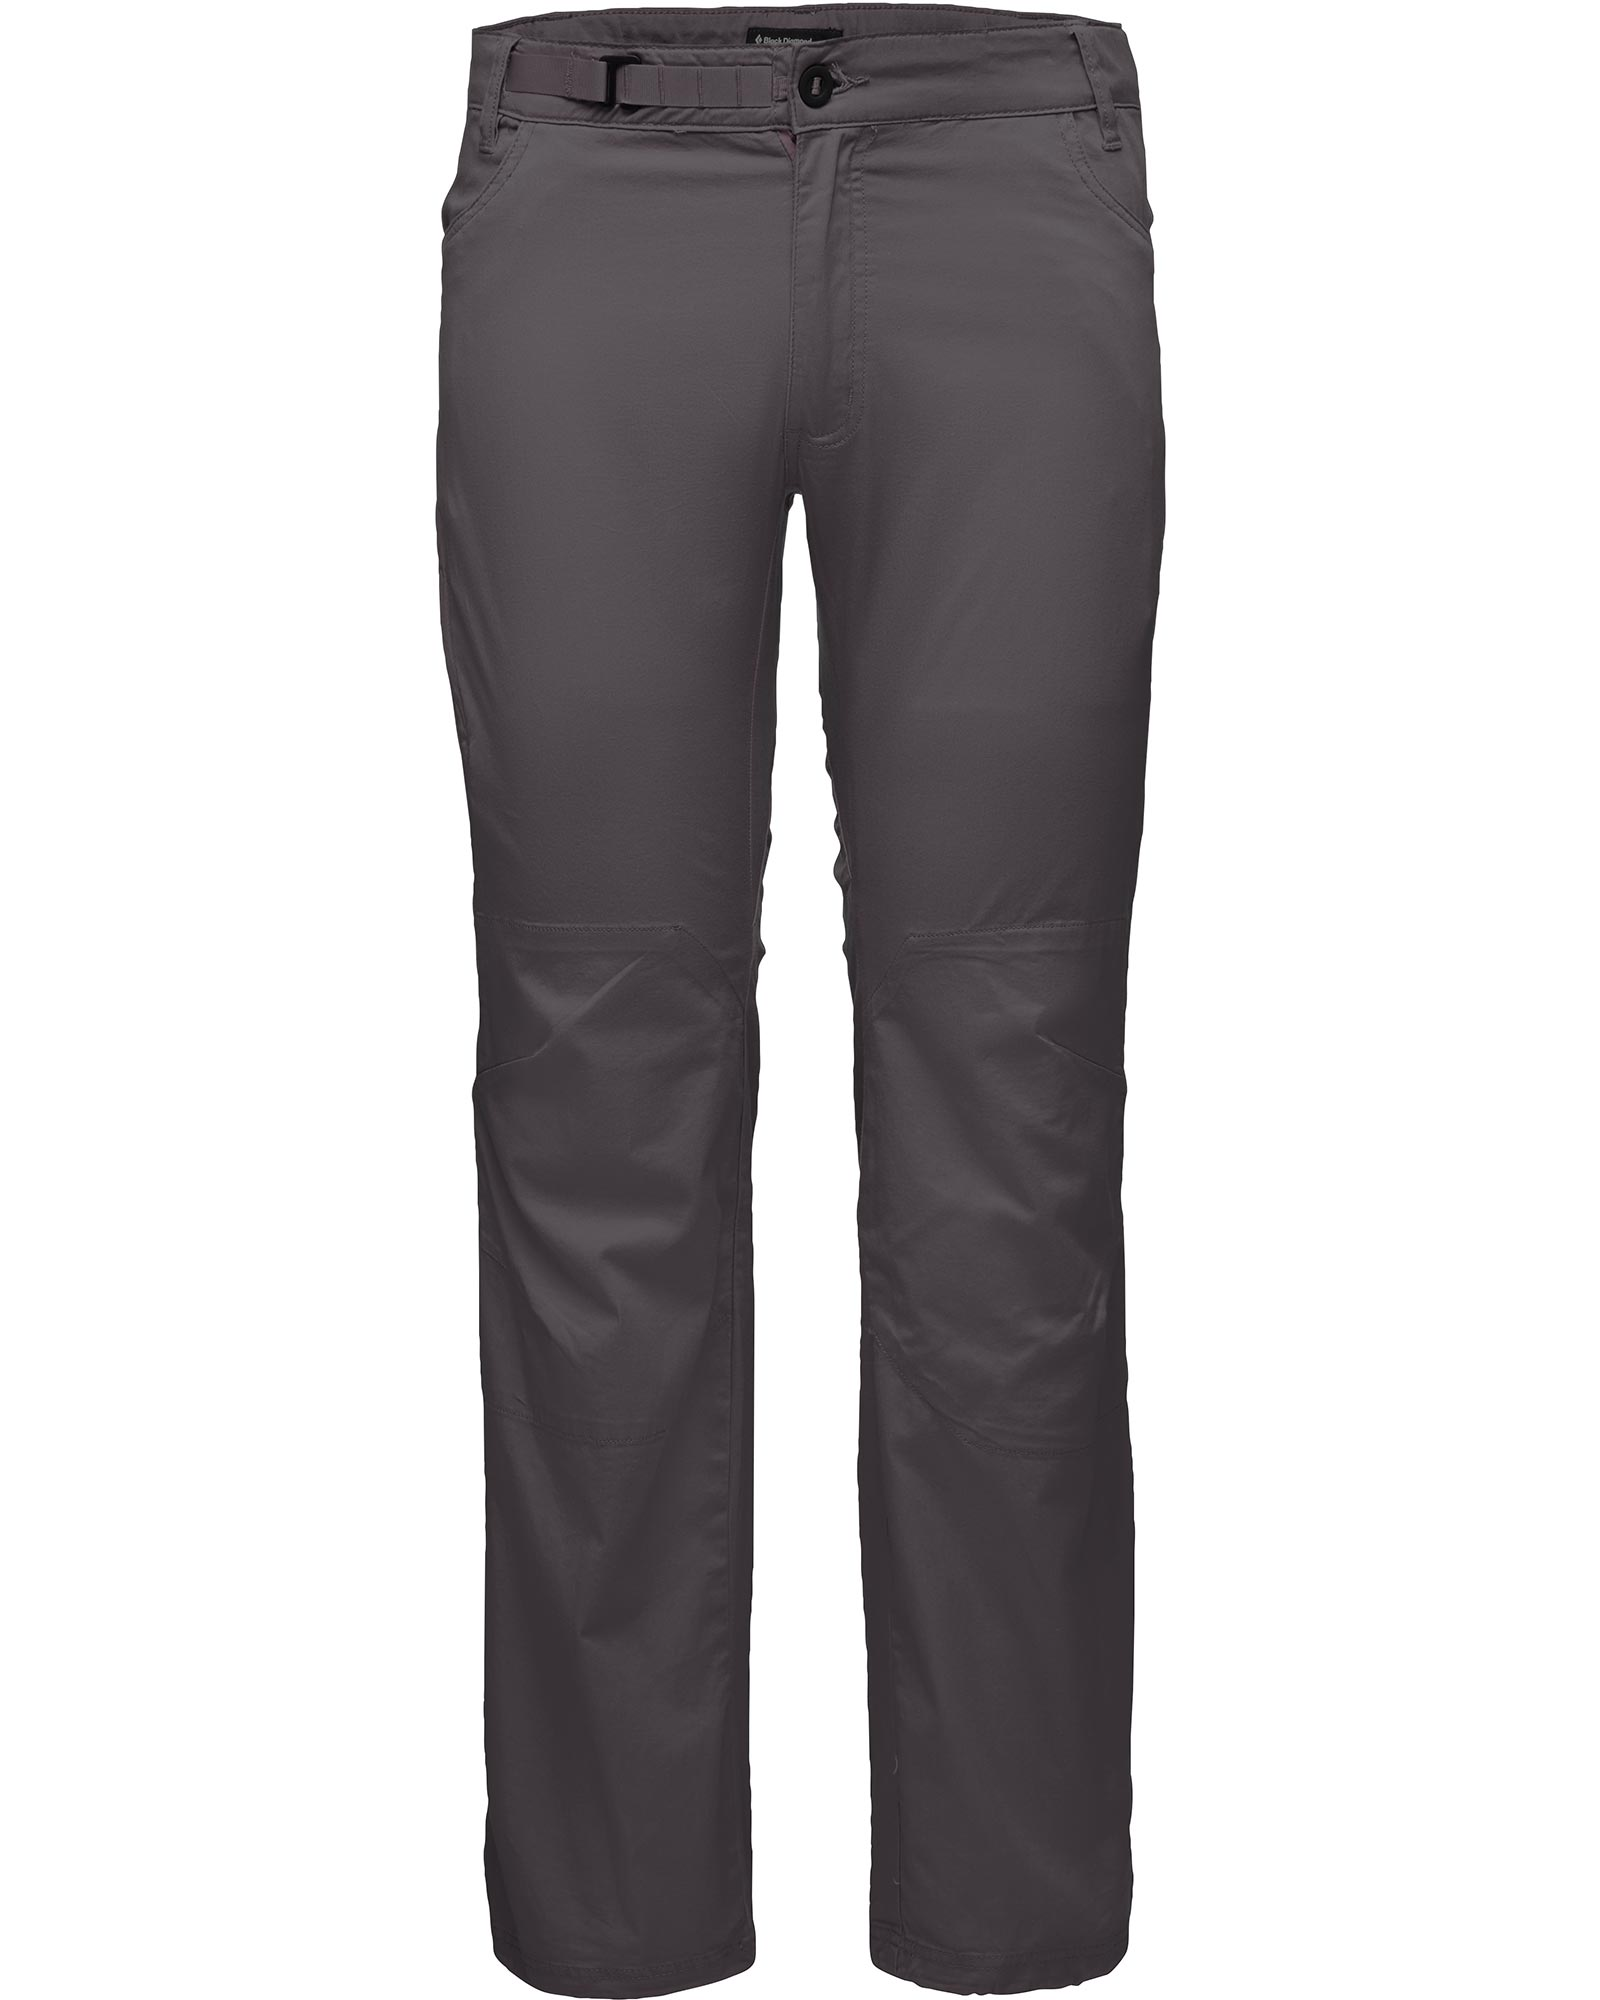 Black Diamond Men's Credo Pants 0